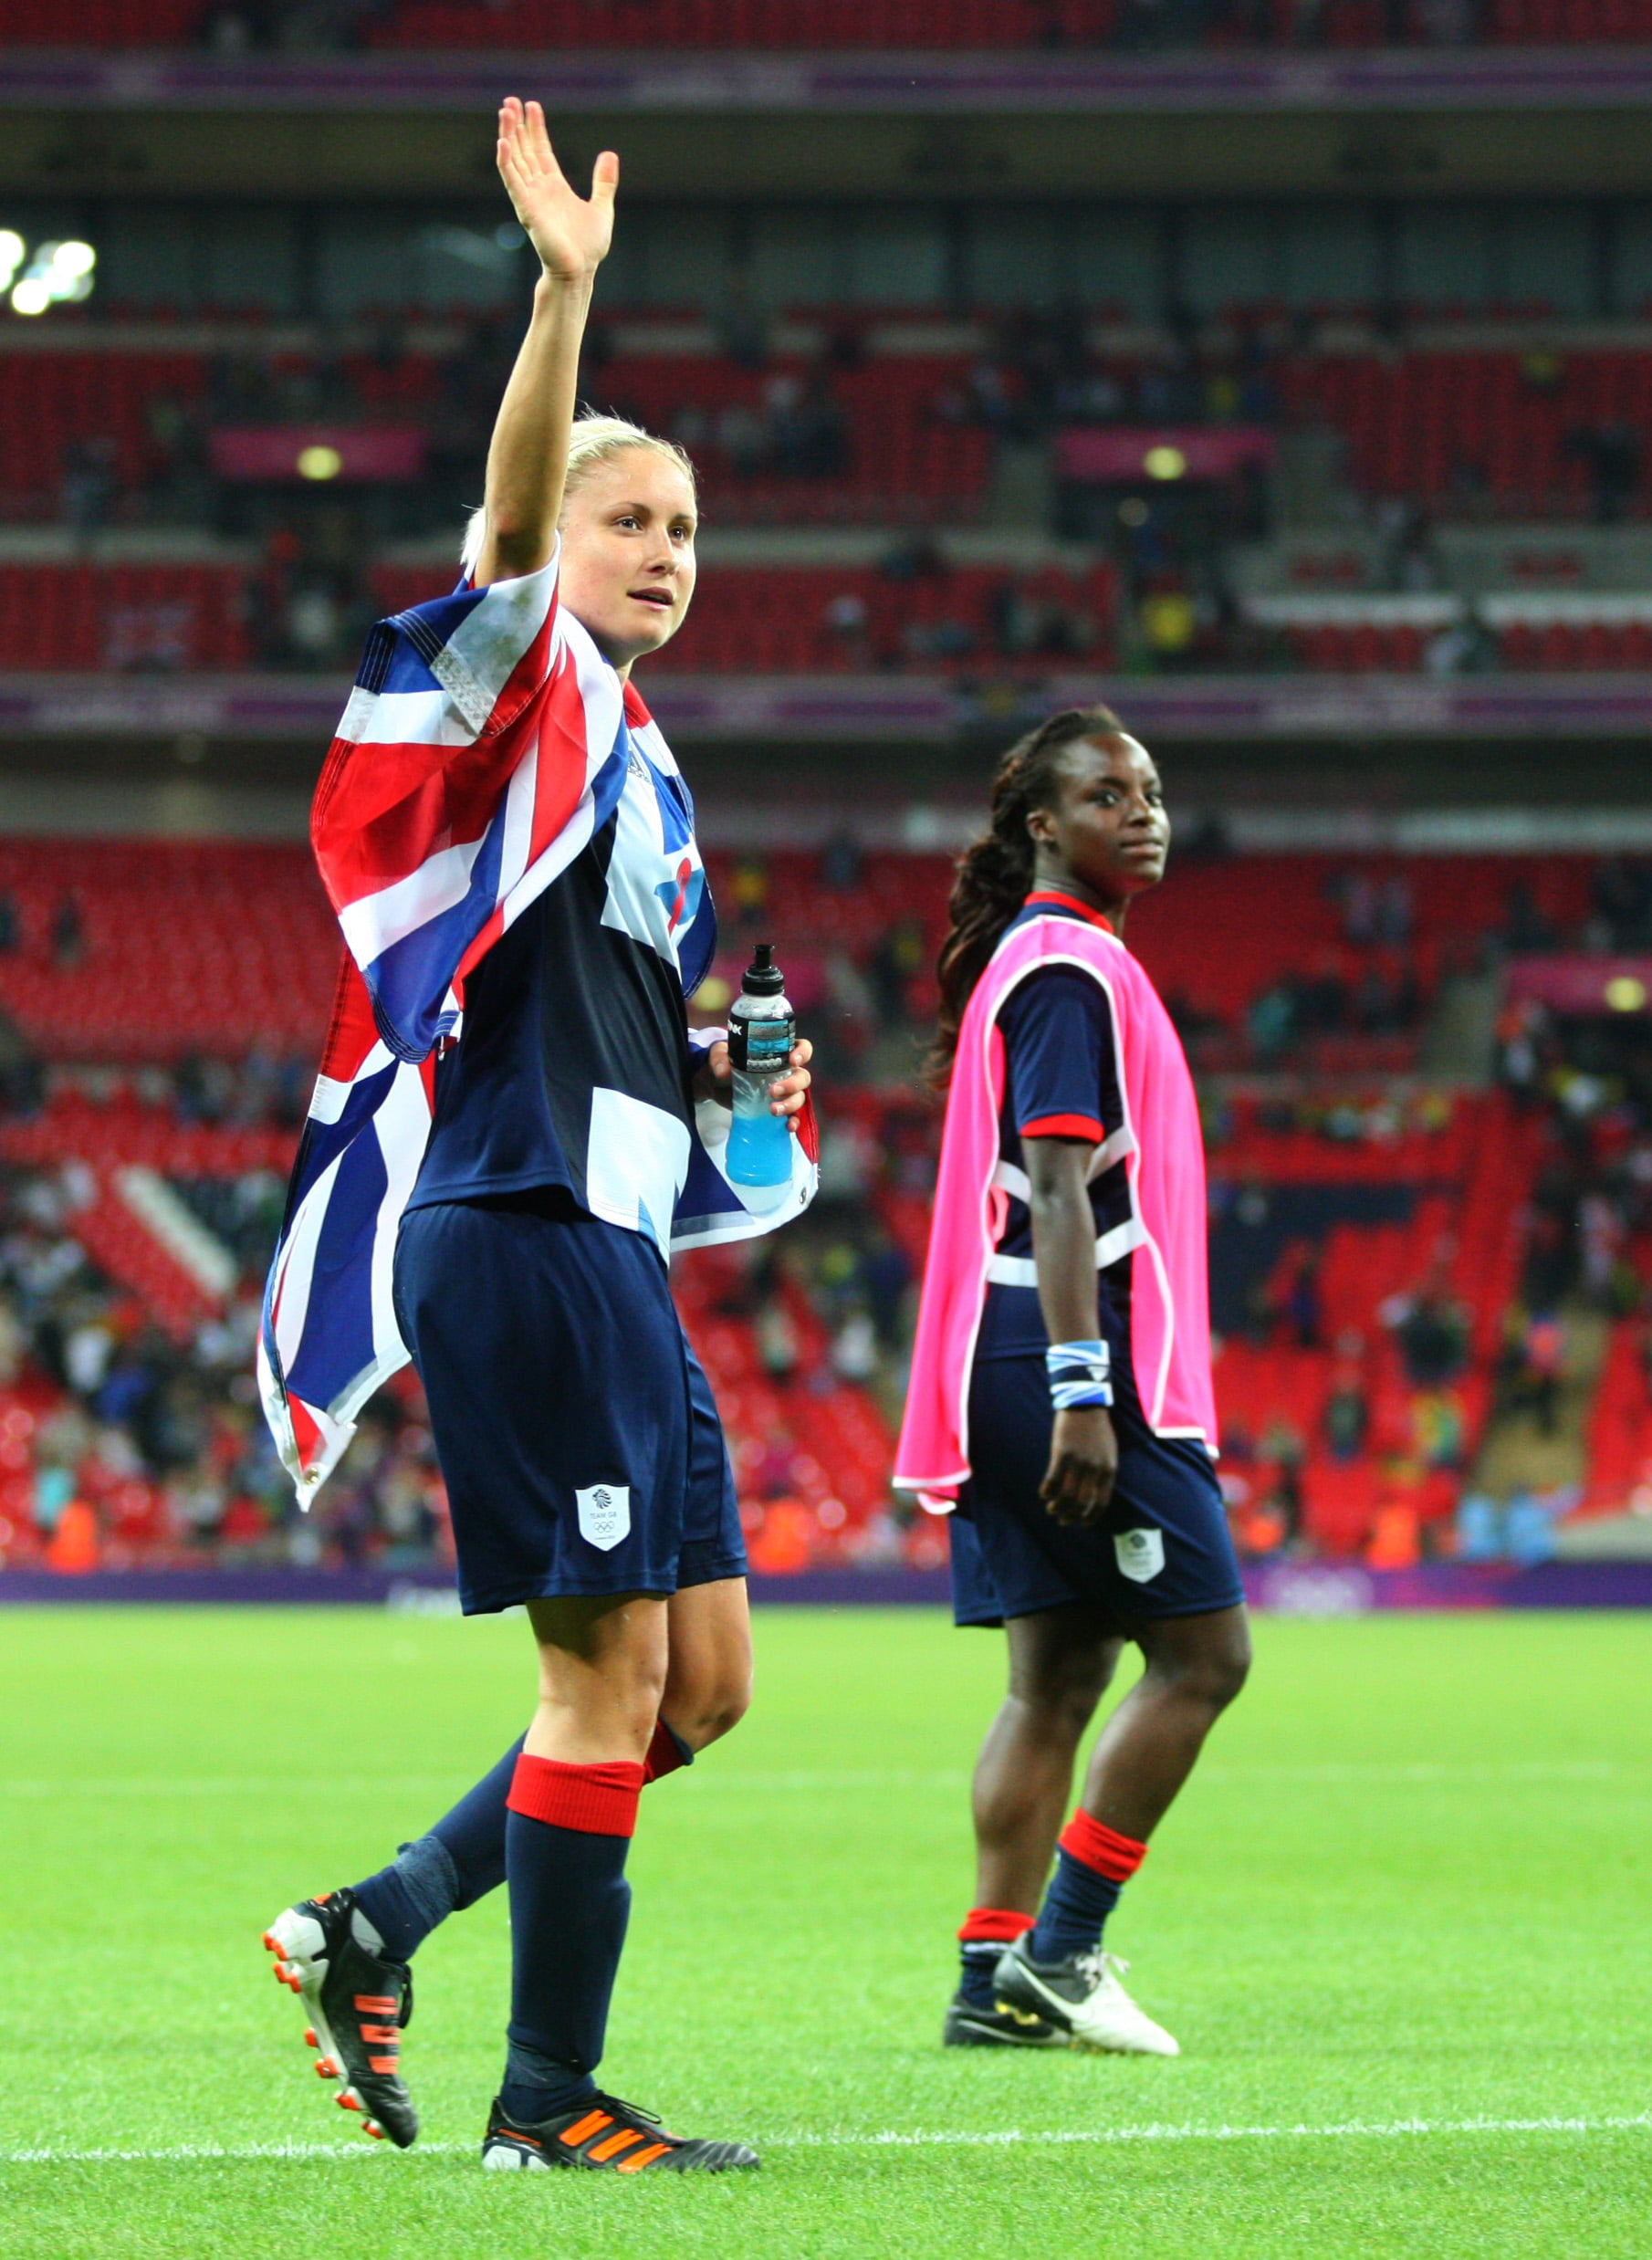 Stephanie Houghton of Team GB Women waves to the fans at the end of the match wearing a Union Jack flag during the 2012 London Olympic Summer Games at Wembley Stadium, London, England, UK on July 31st 2012 (Photo by AMA/Corbis via Getty Images)